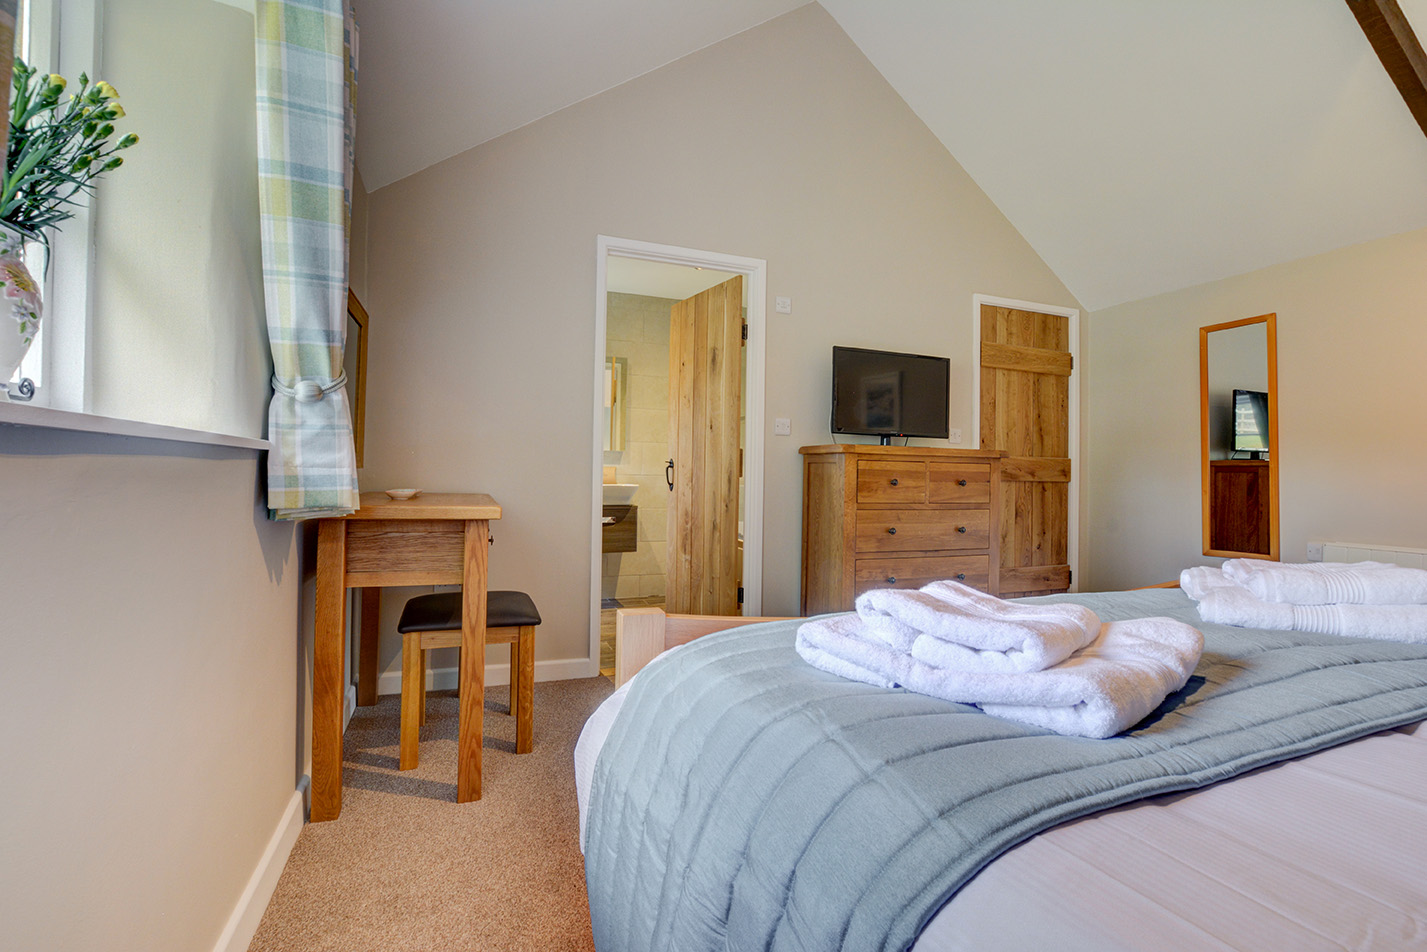 The second bedroom of Goosehill luxury self catering converted barn holiday cottage at Penrose Burden in North Cornwall 03.jpg